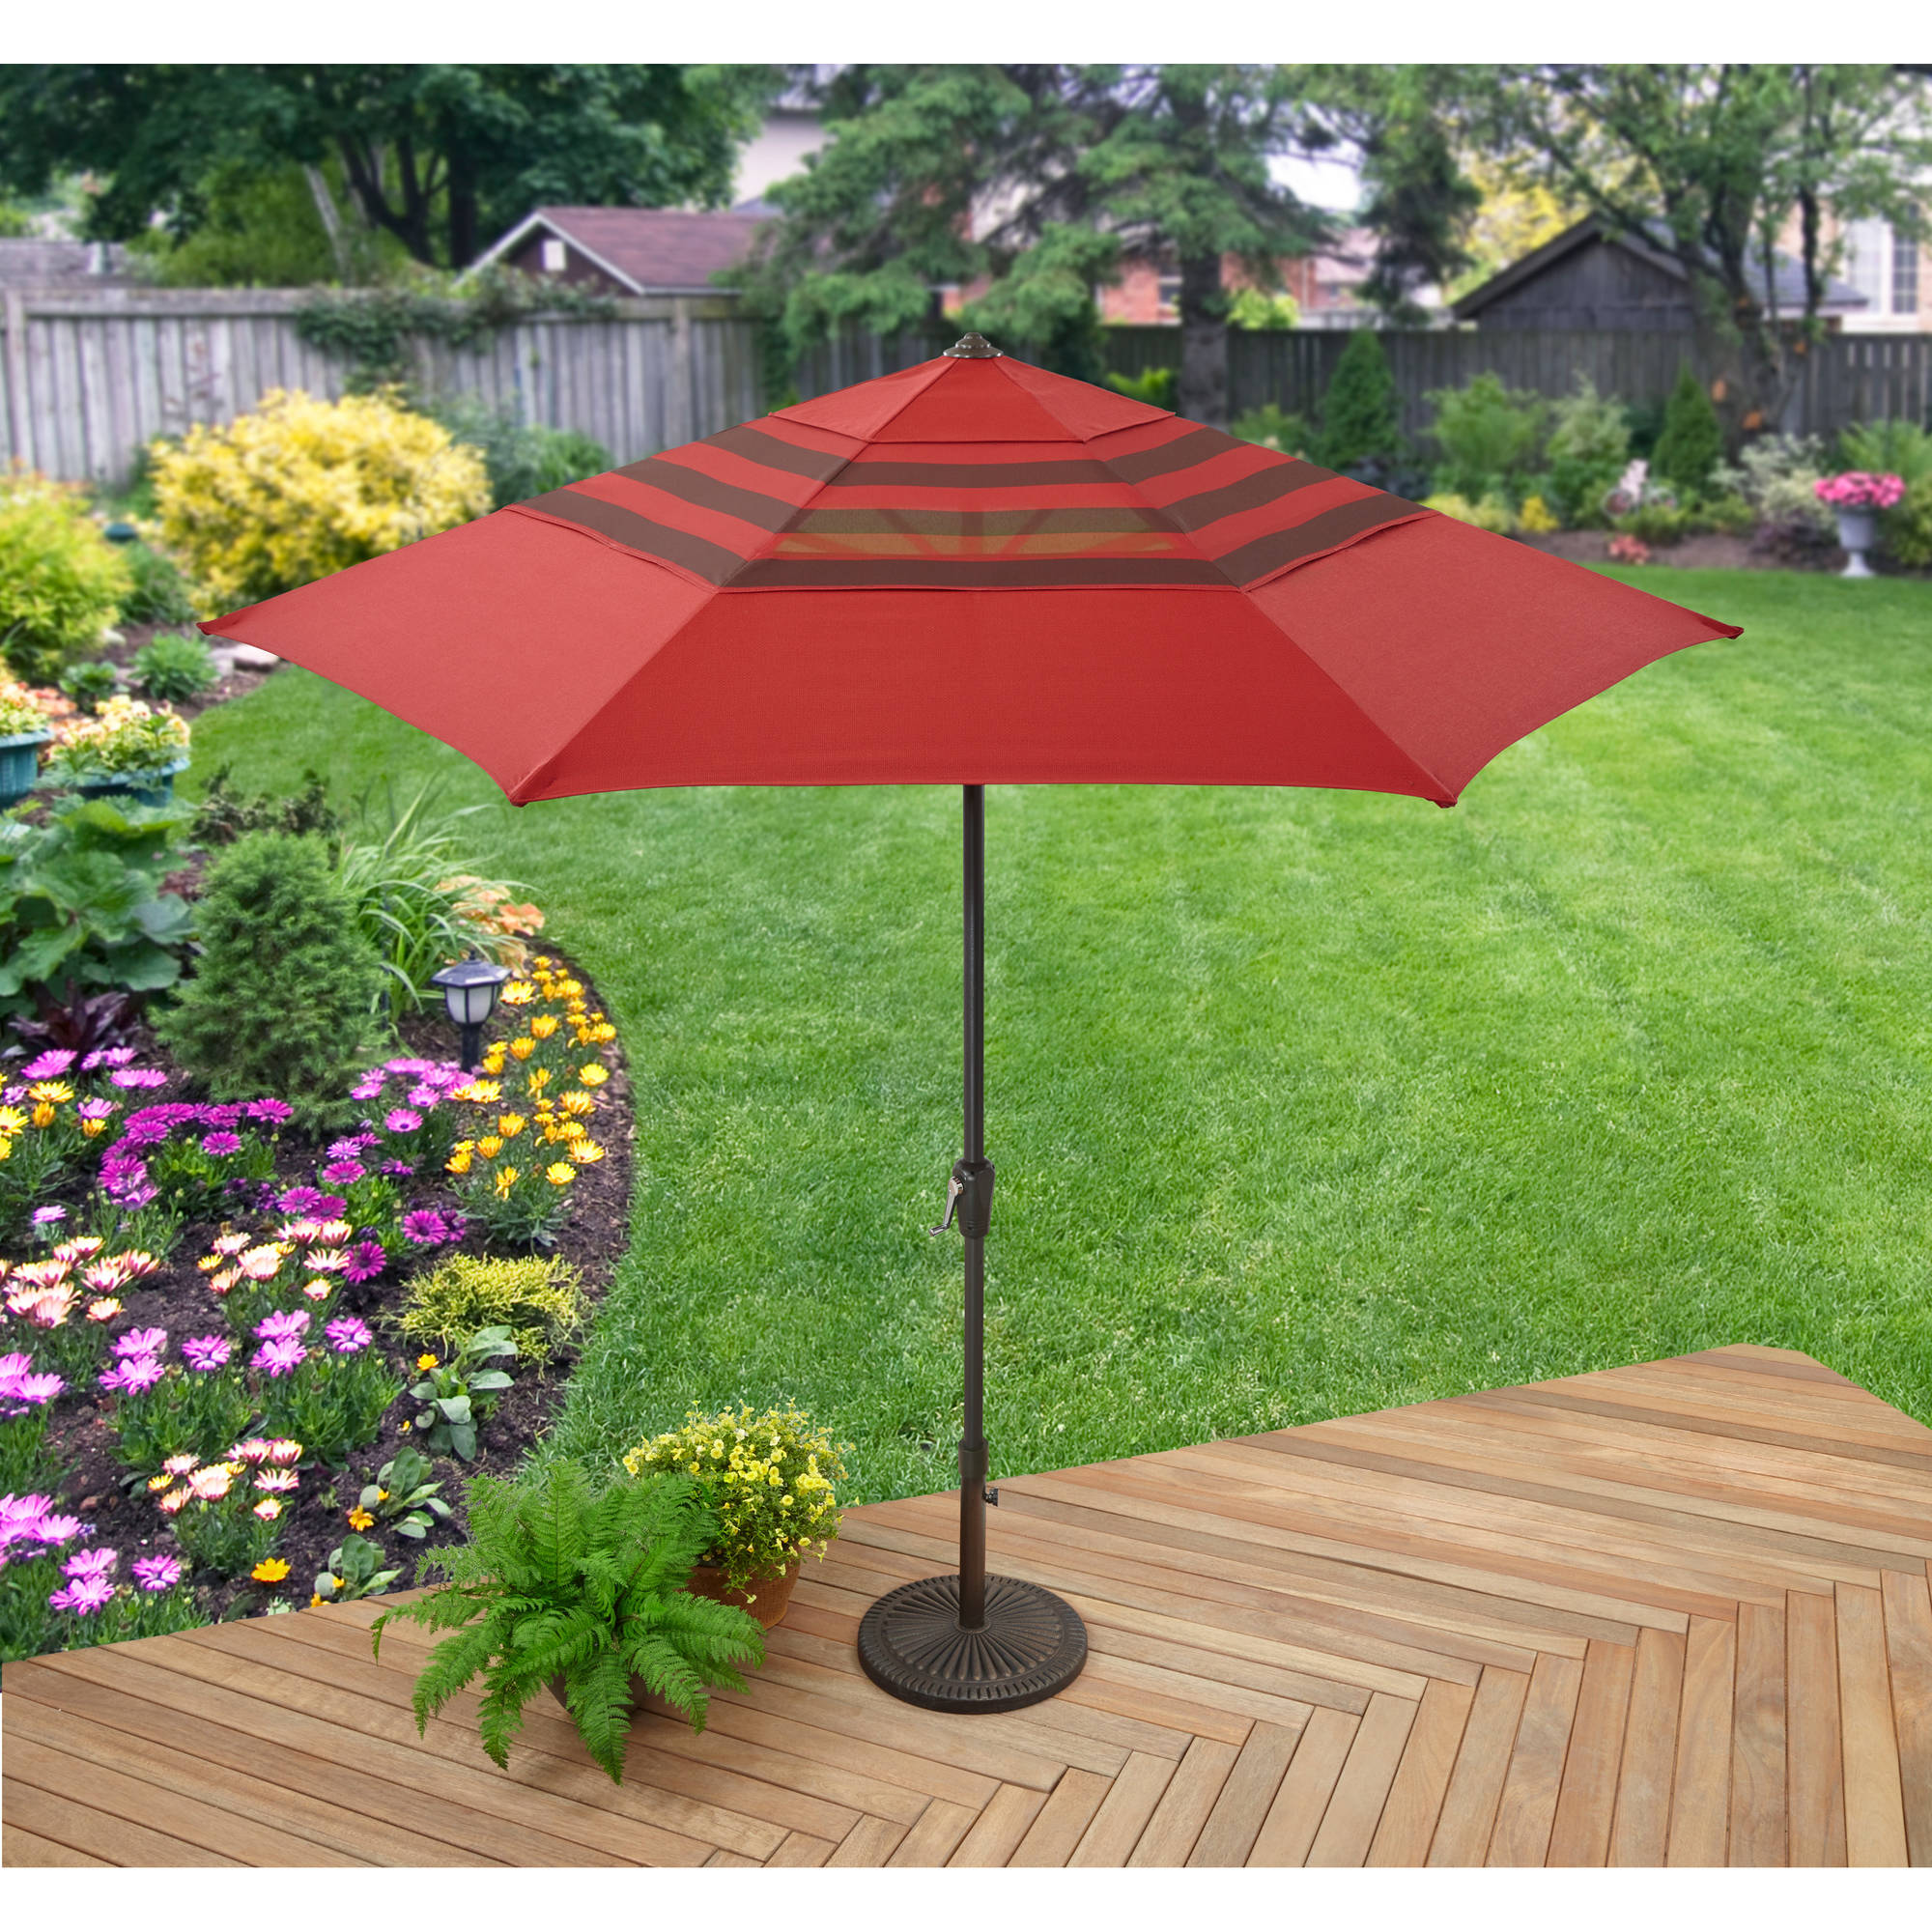 Better Homes and Gardens Rush Valley 9' 3-Tier Crank and Tilt Market Umbrella